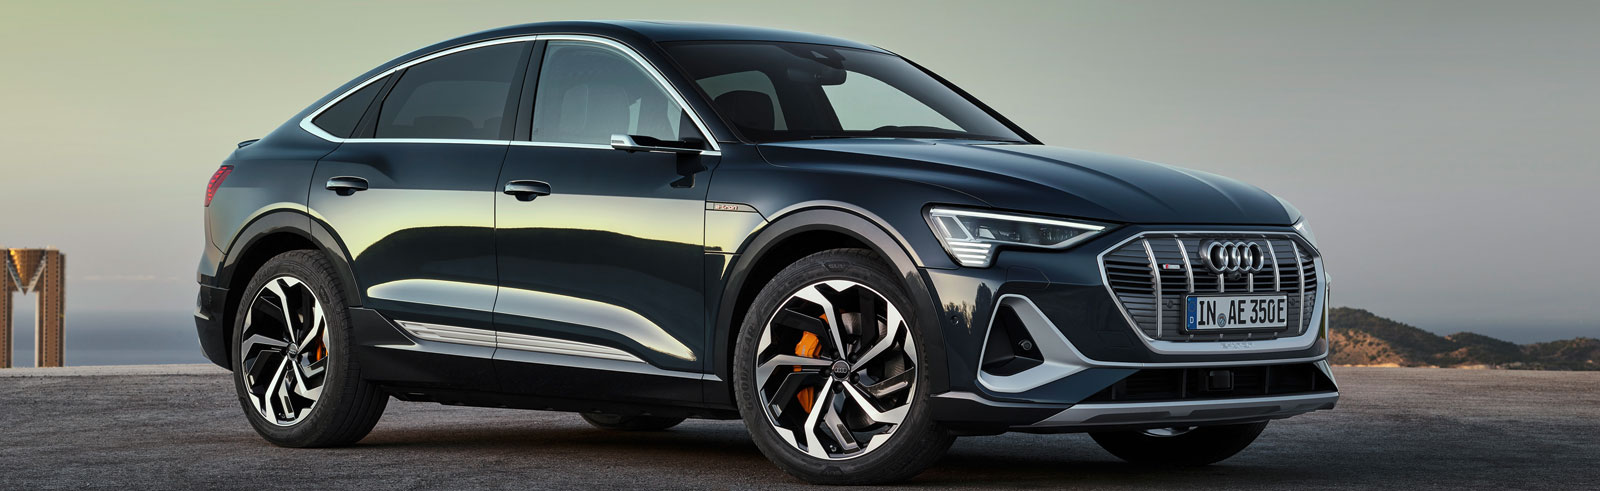 Audi e-tron Sportback is launched as planned